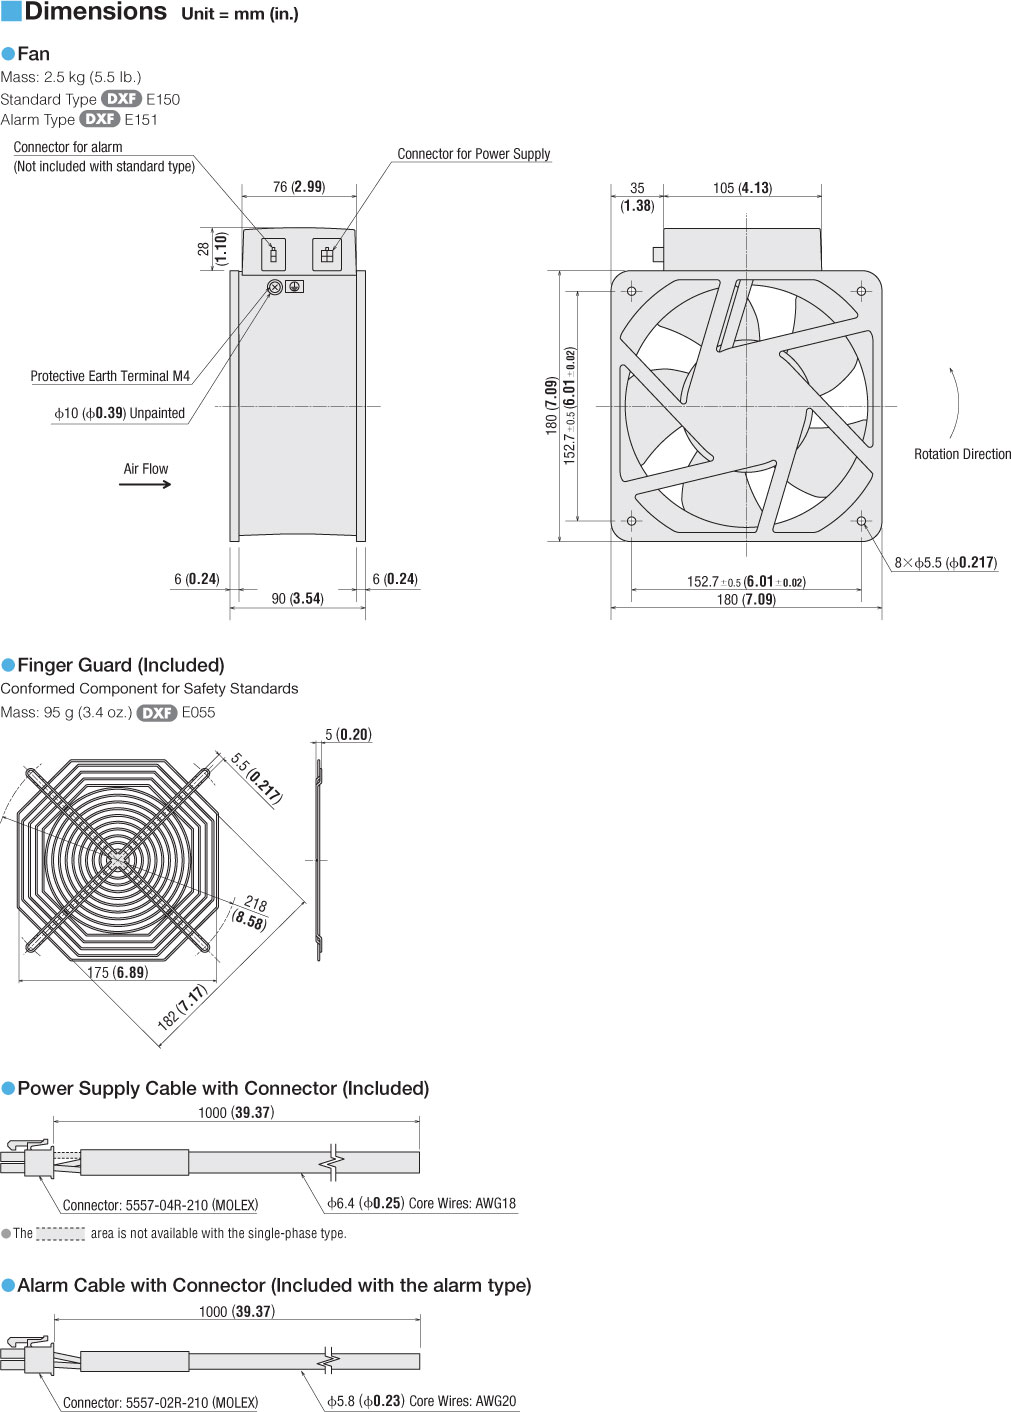 Mre18 Bmhg Triangle Fan Wiring Diagram Connection Dimensions